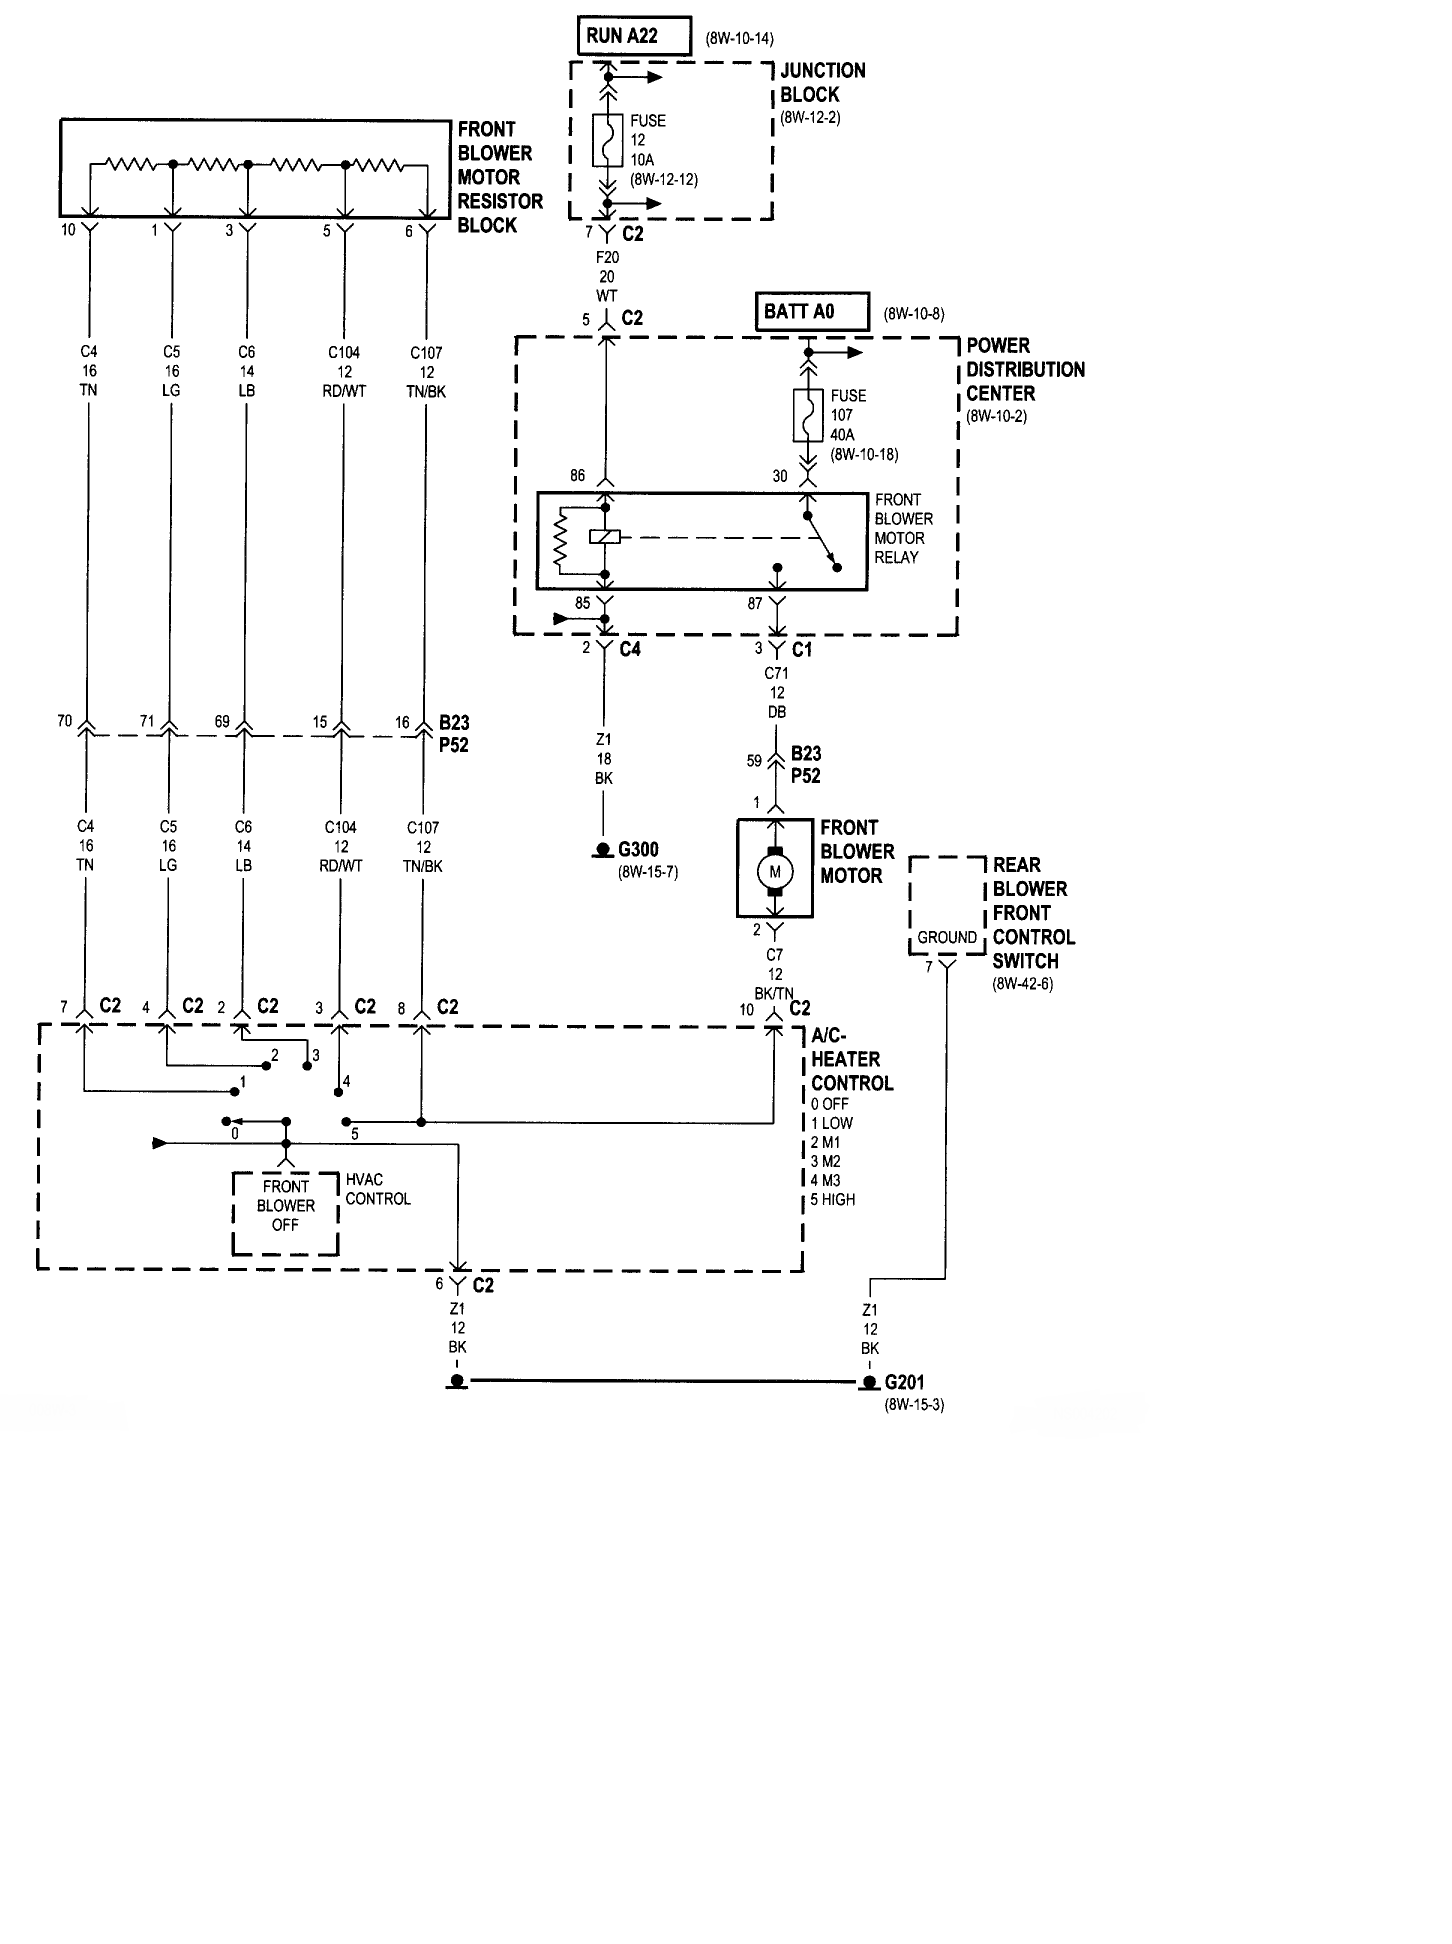 1999 Grand Voyager Fuse Box Diagram